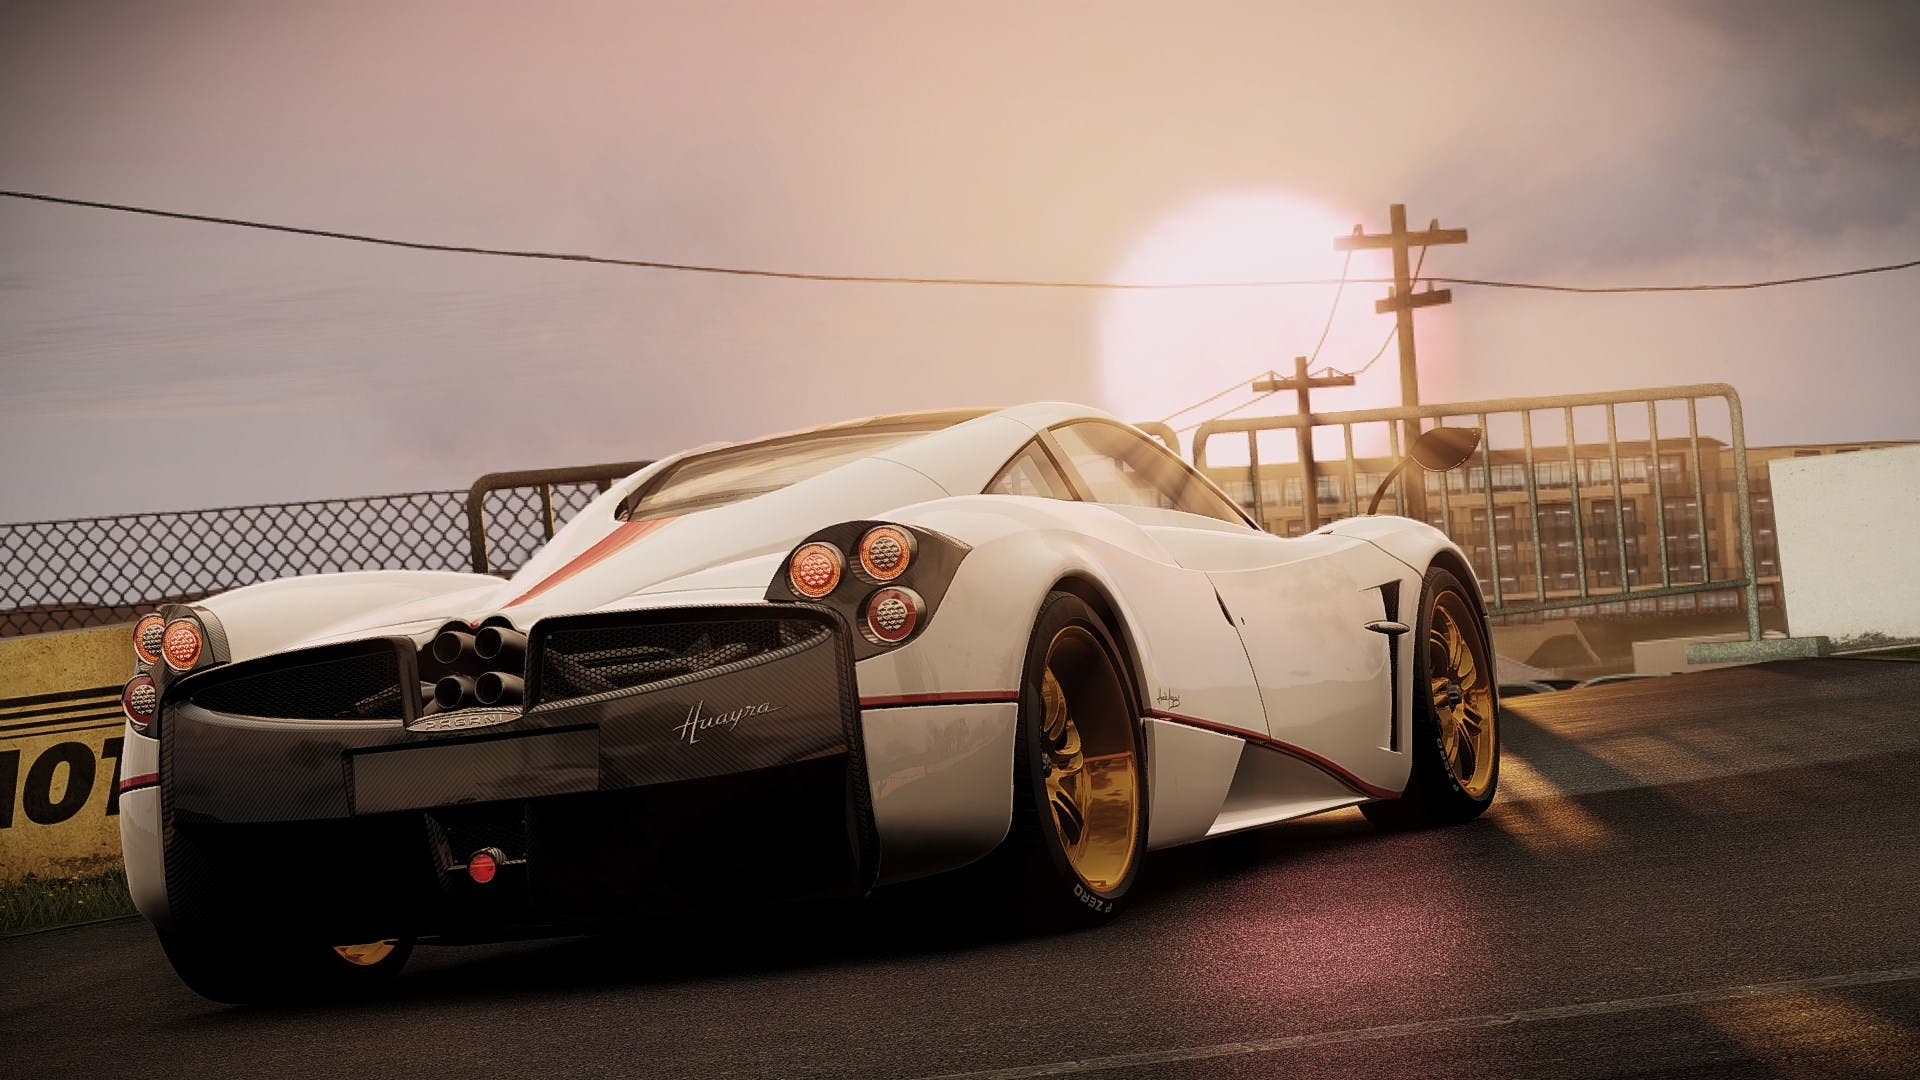 Nuevos gameplays de 'Project Cars', 'Art of Balance' y 'Phoenix Wright: Ace Attorney Trilogy'